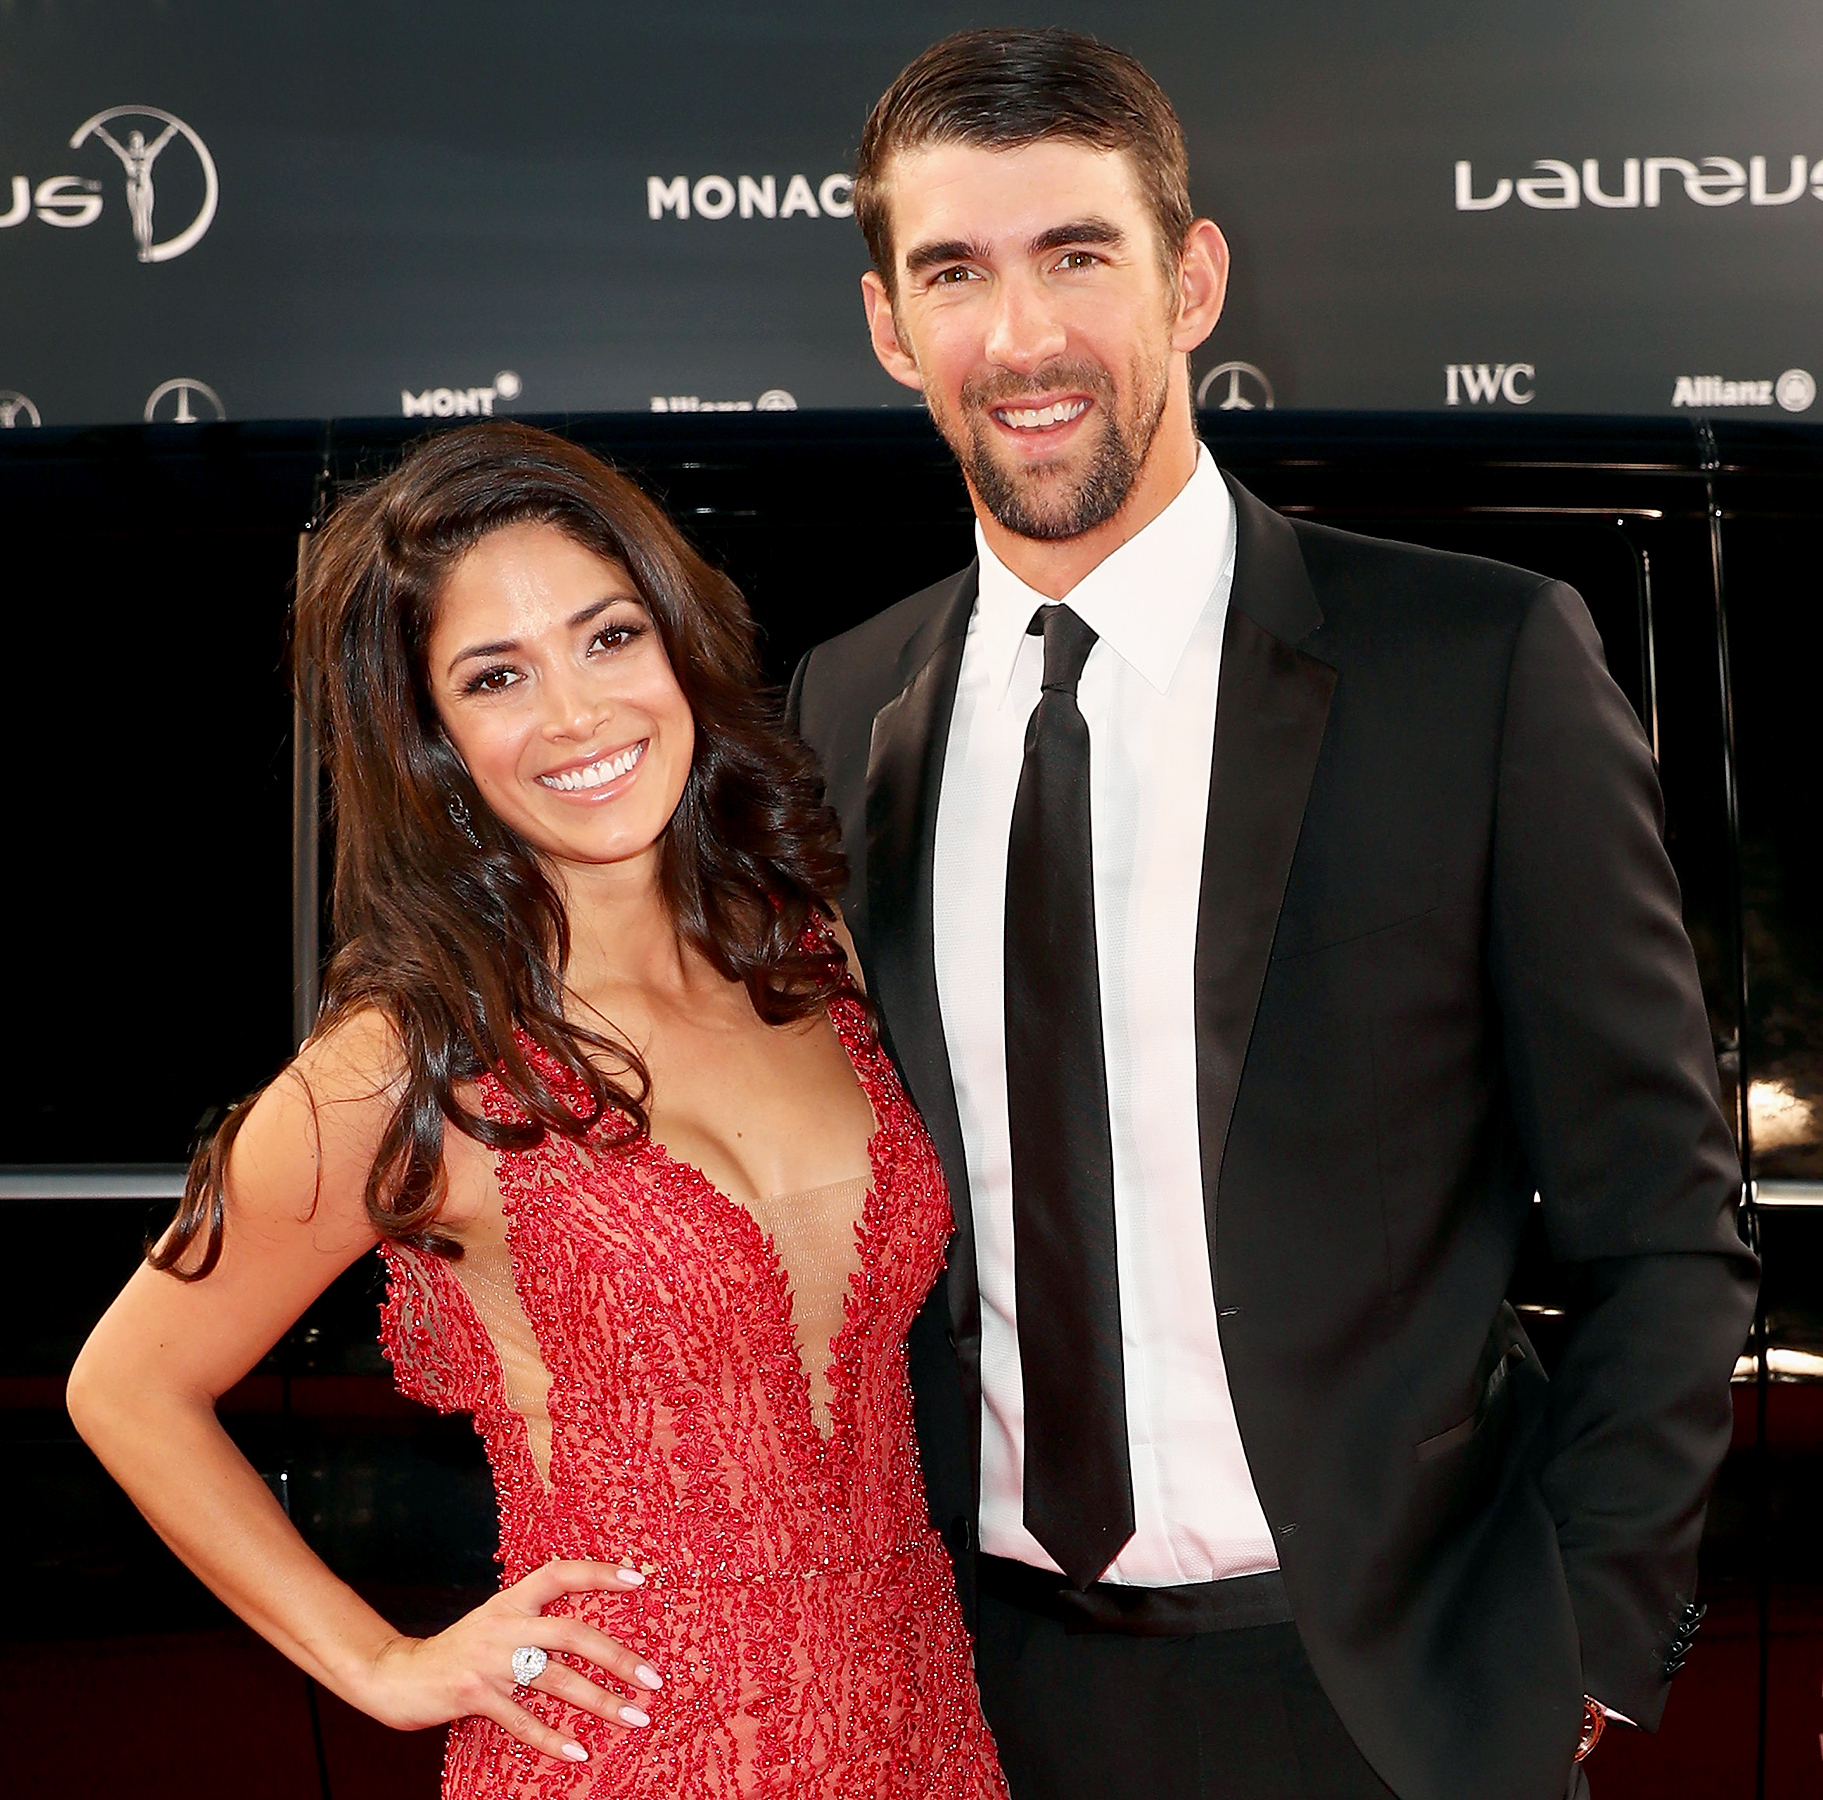 Michael Phelps and Nicole Phelps attend the 2017 Laureus World Sports Awards at the Salle des Etoiles,Sporting Monte Carlo on February 14, 2017 in Monaco, Monaco.